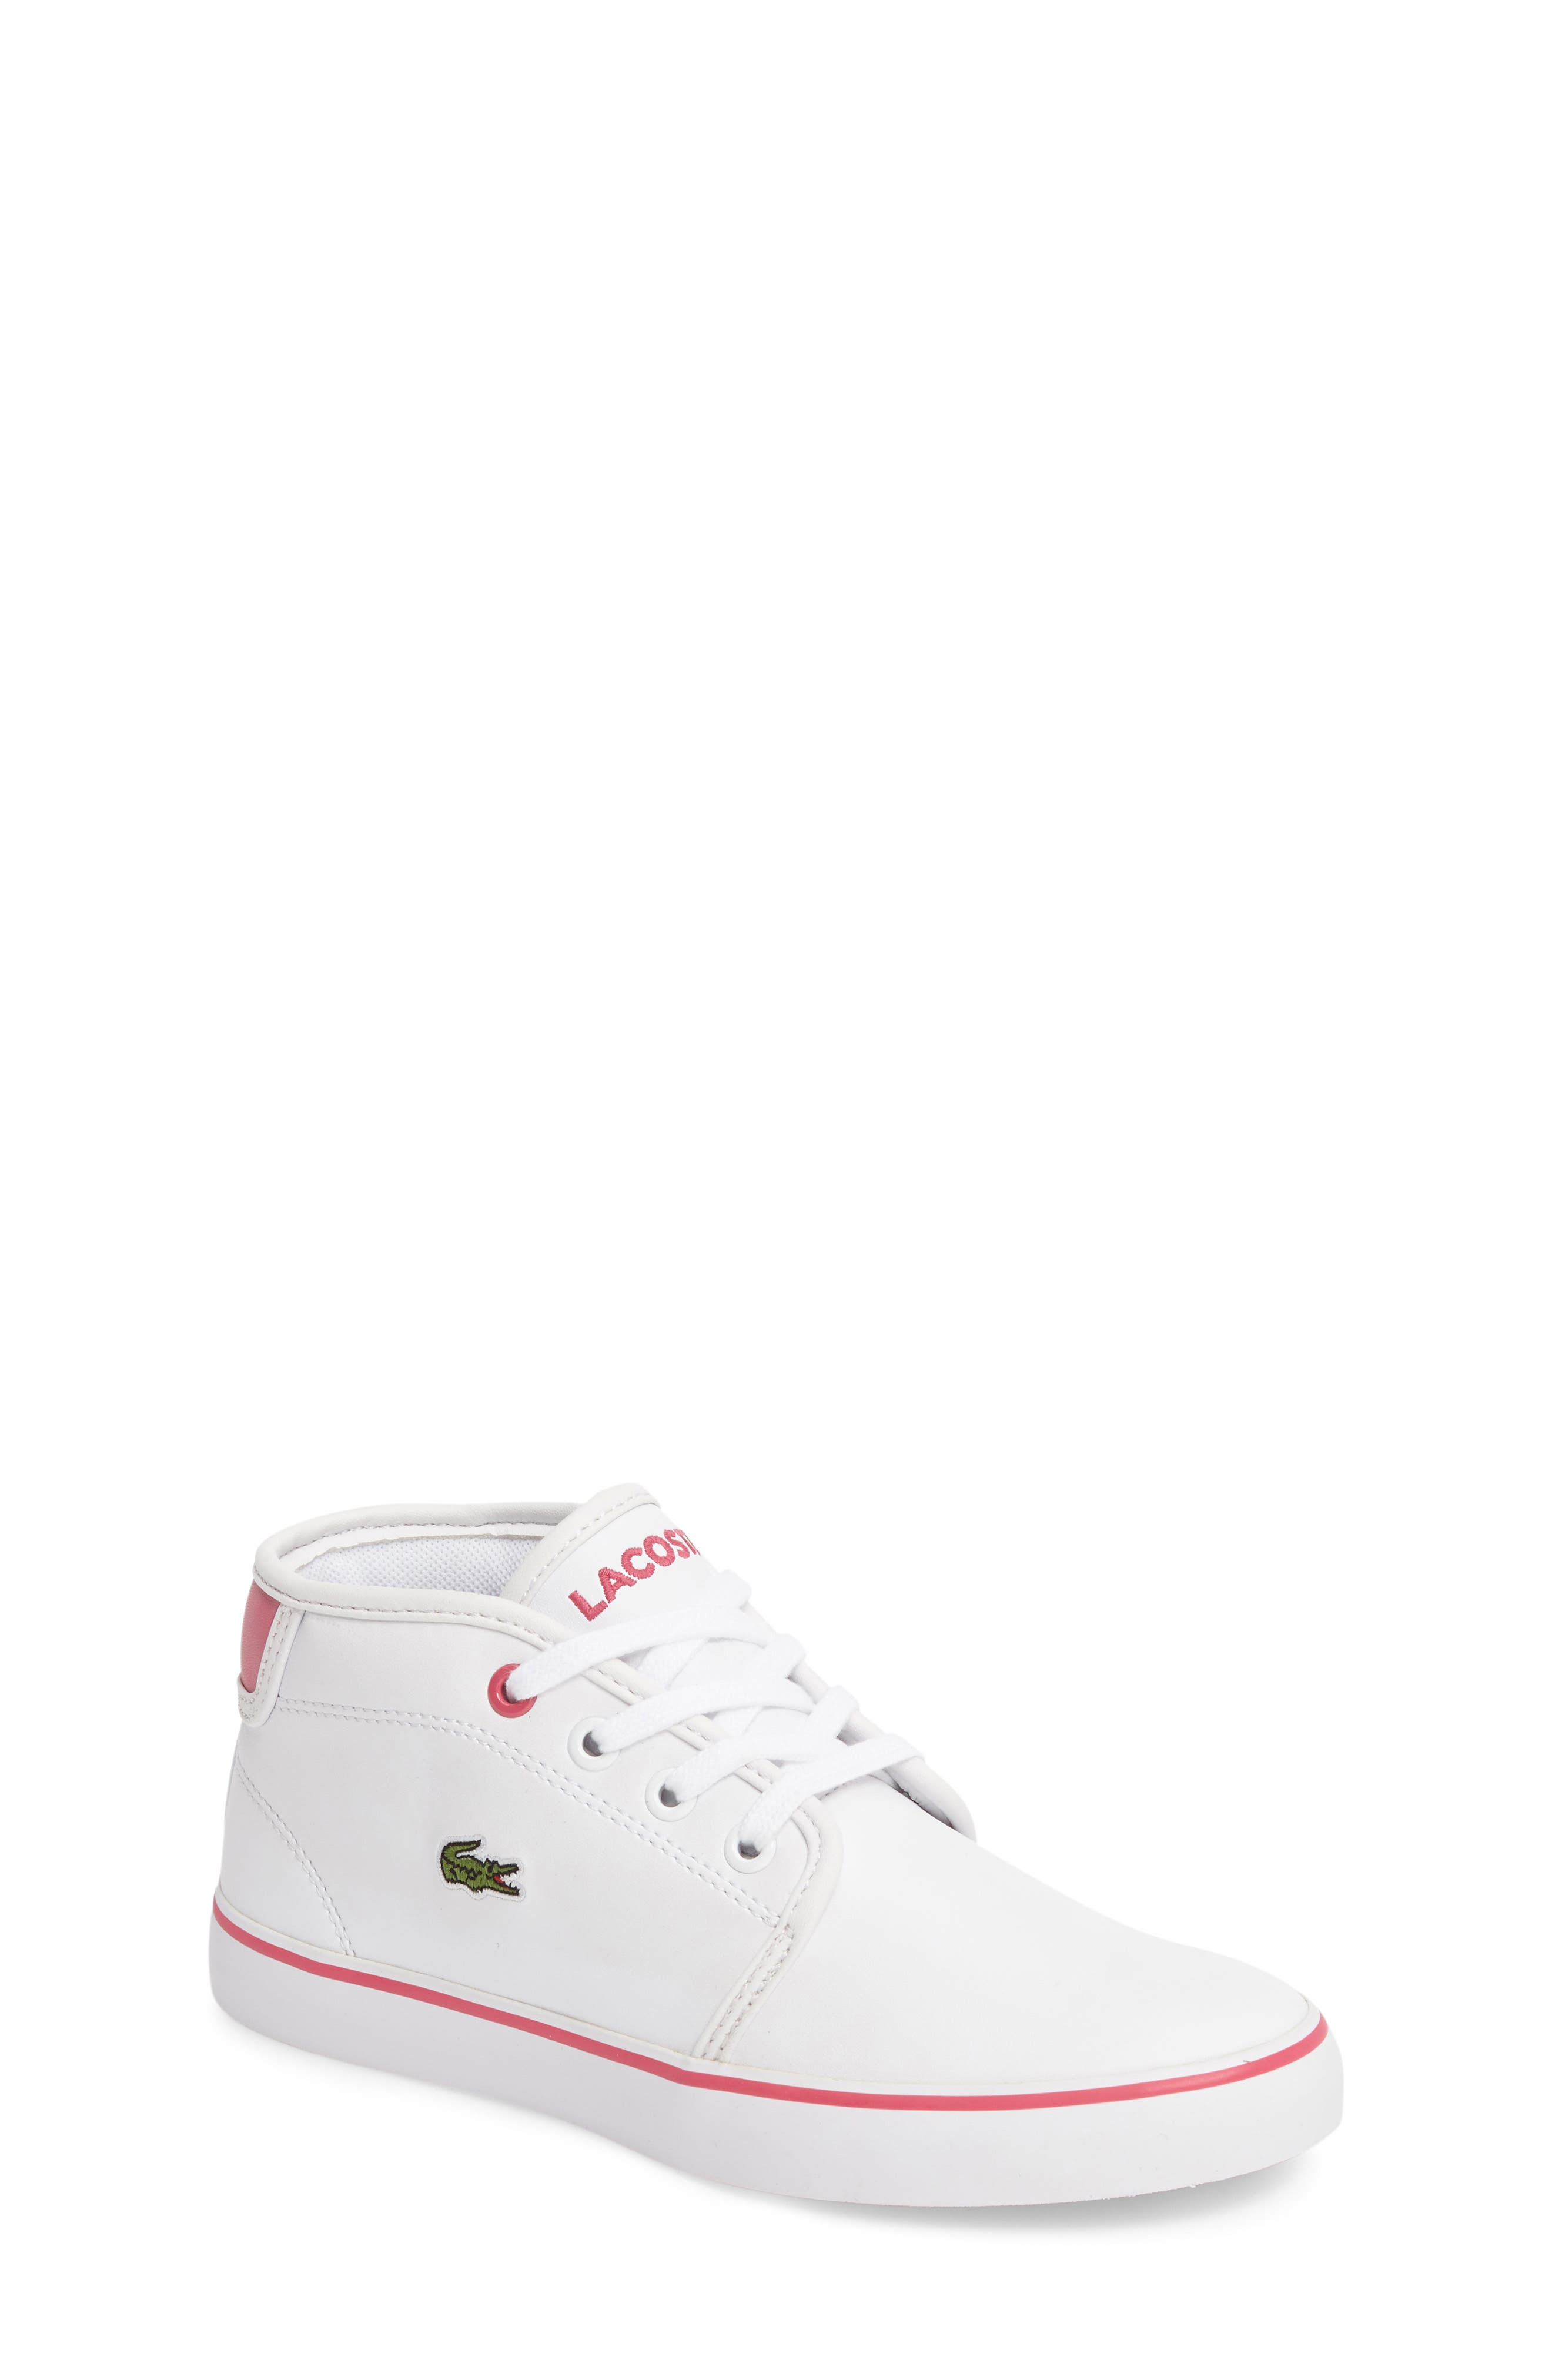 Ampthill Mid-Top Sneaker,                             Main thumbnail 1, color,                             161